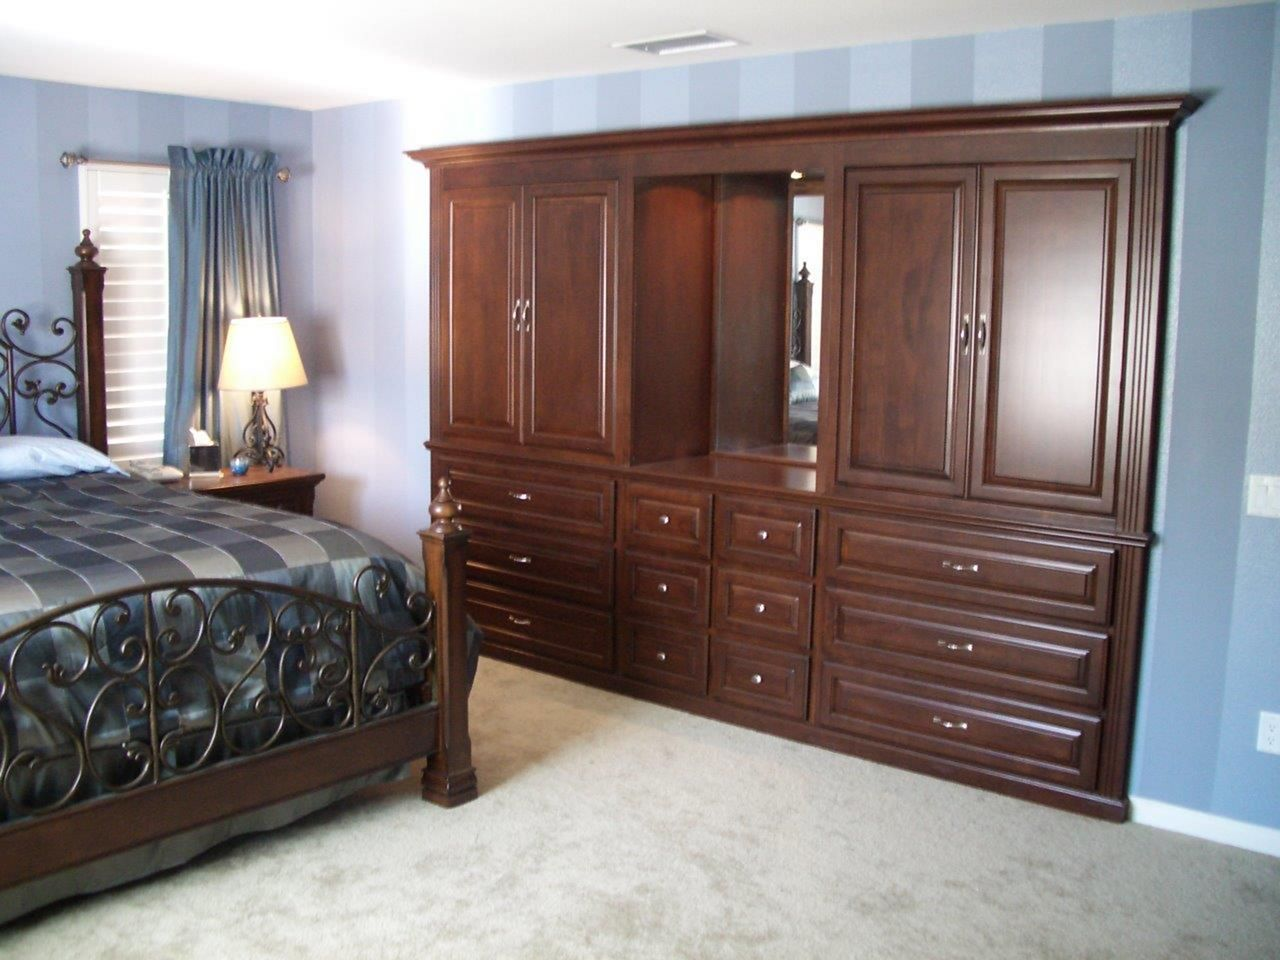 20 Small Bedroom With Cabinets That You Must Have ...